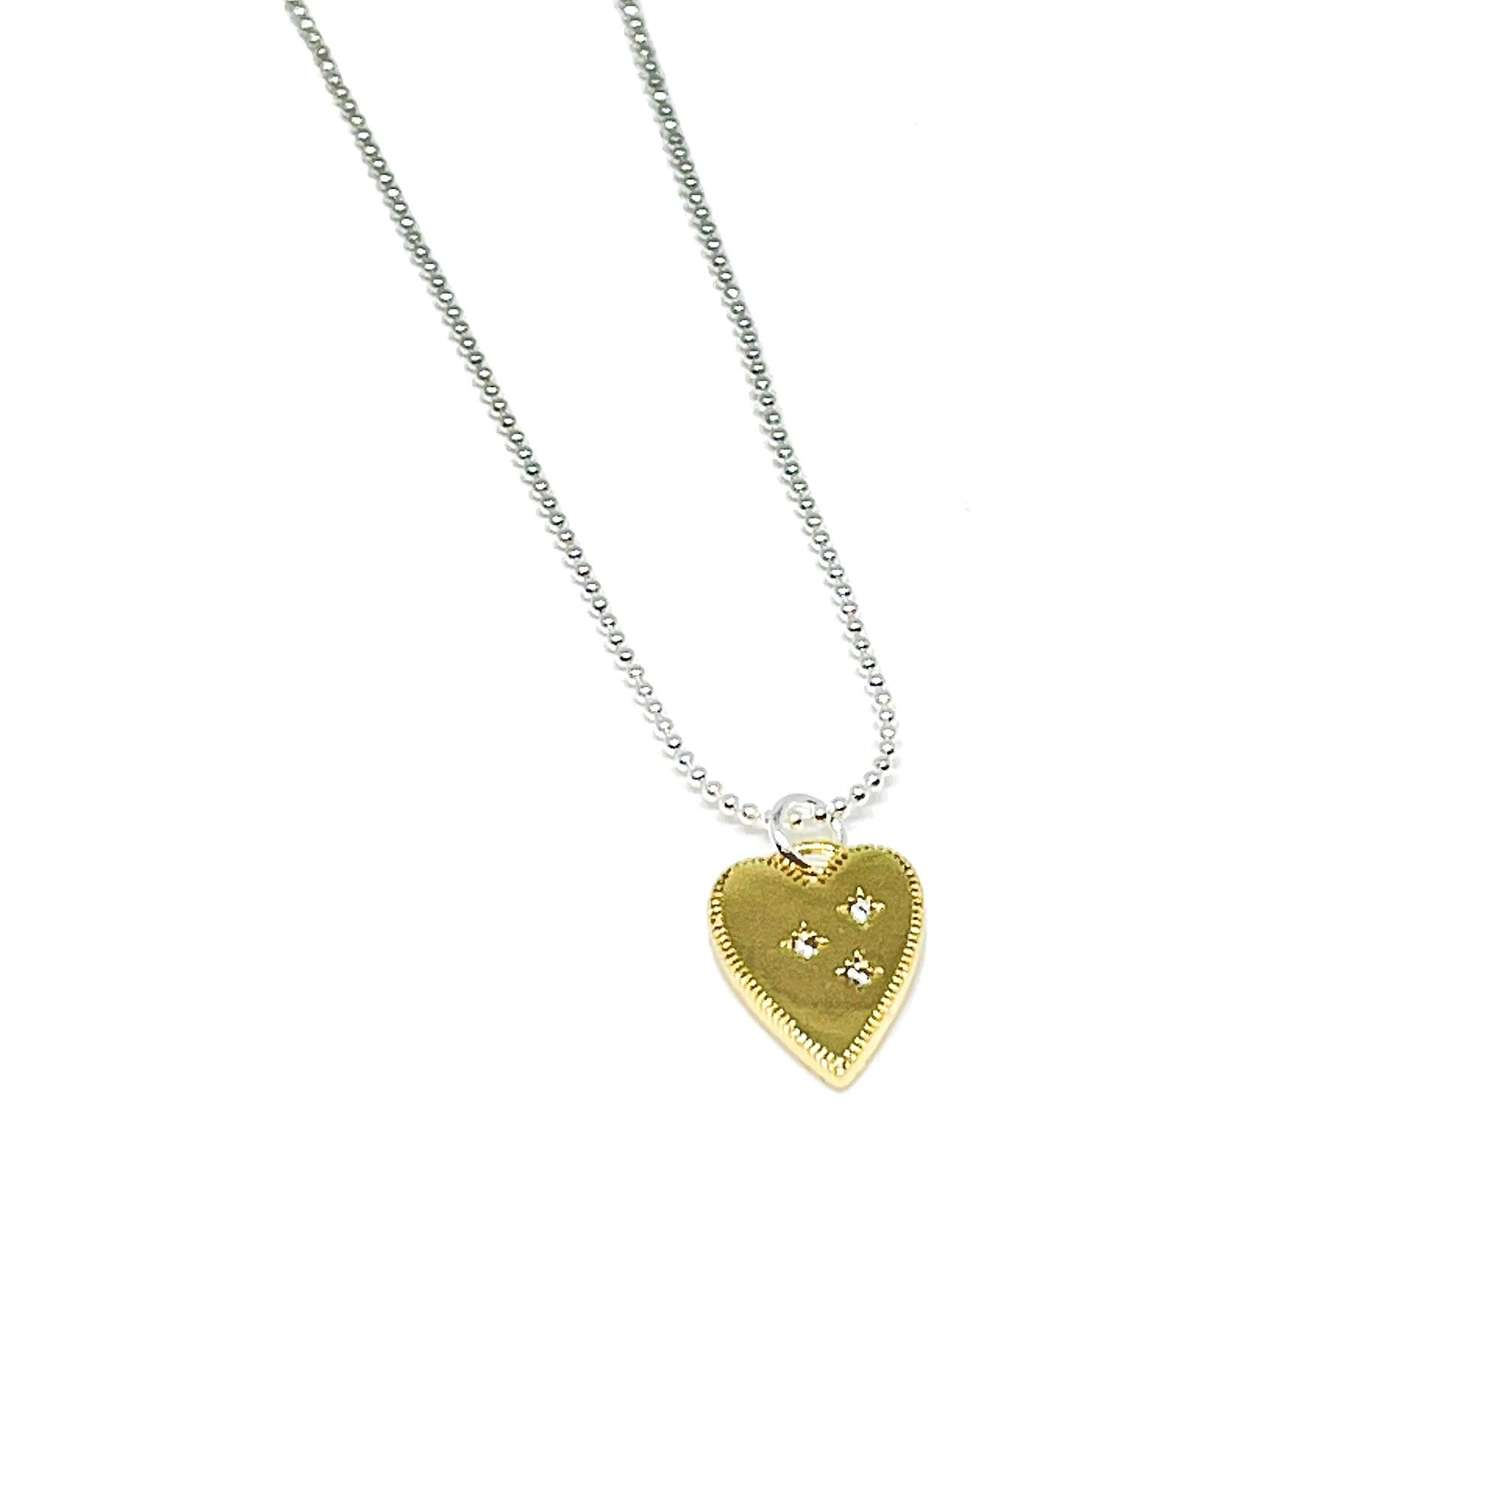 Lucy Heart Necklace - Gold